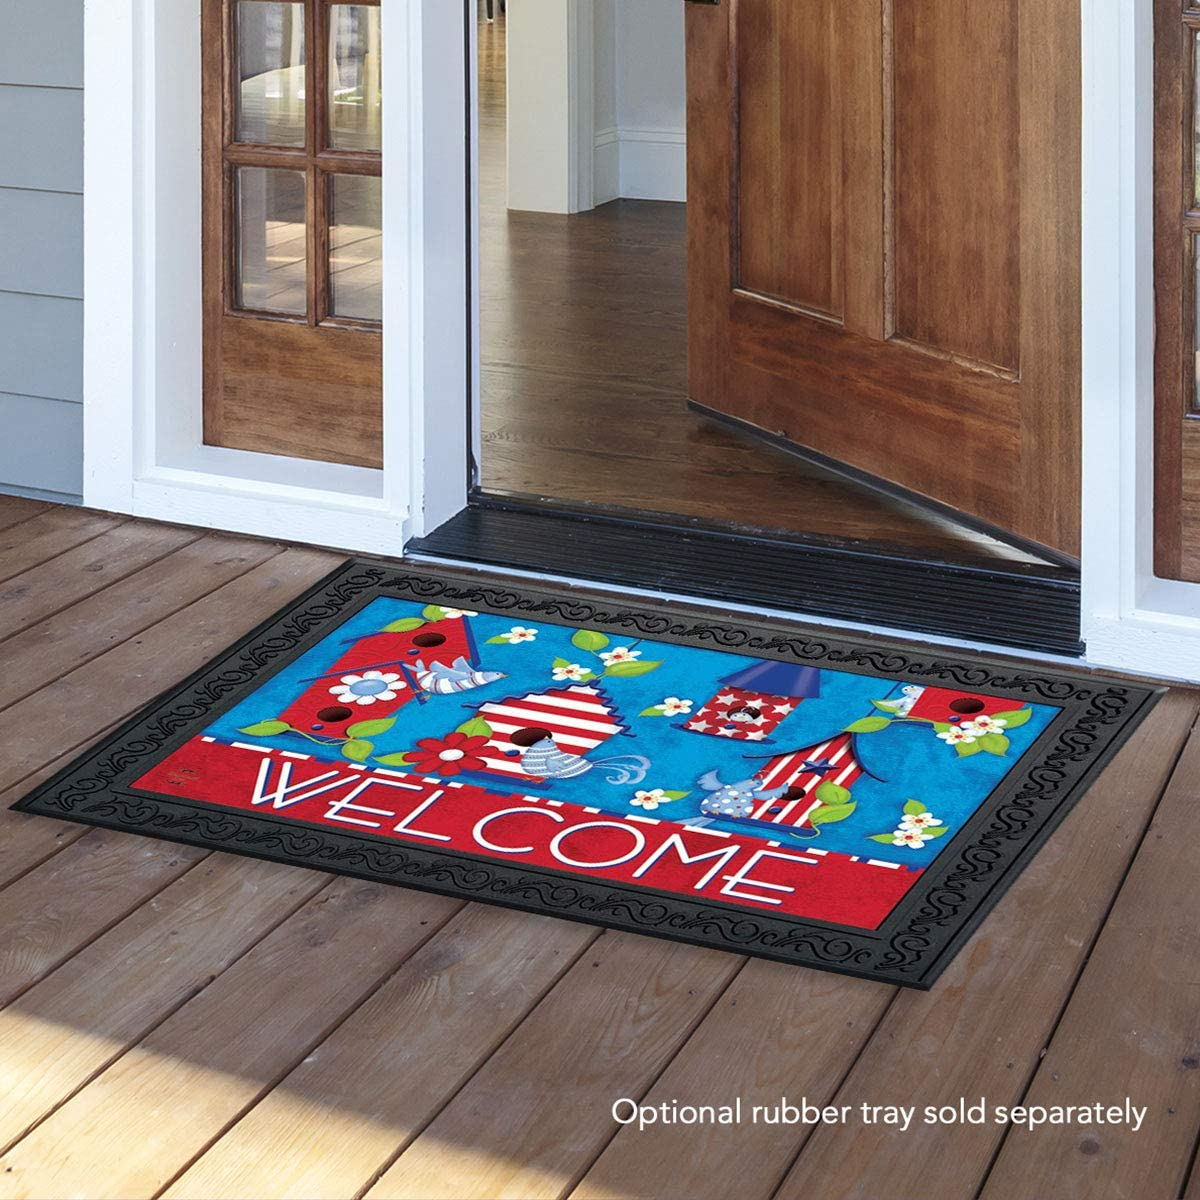 Briarwood Lane Patriotic Birds Primitive Doormat Indoor Outdoor 18 x 30